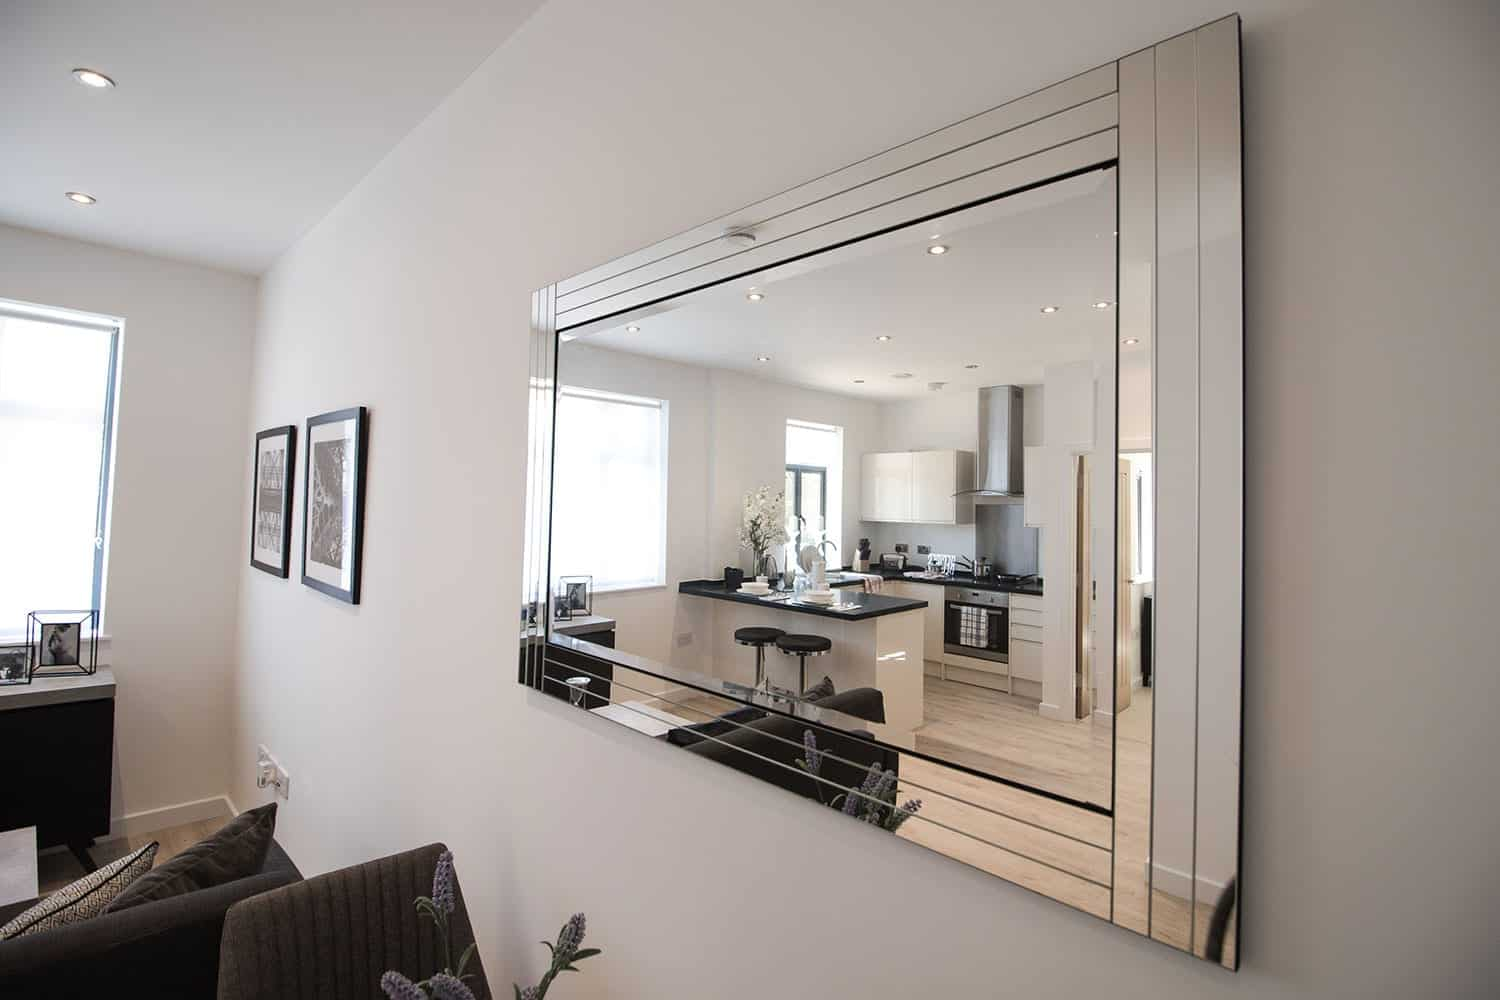 Normandy House Hemel Hempstead Interior: Commercial to Residential Property Conversion Apartment